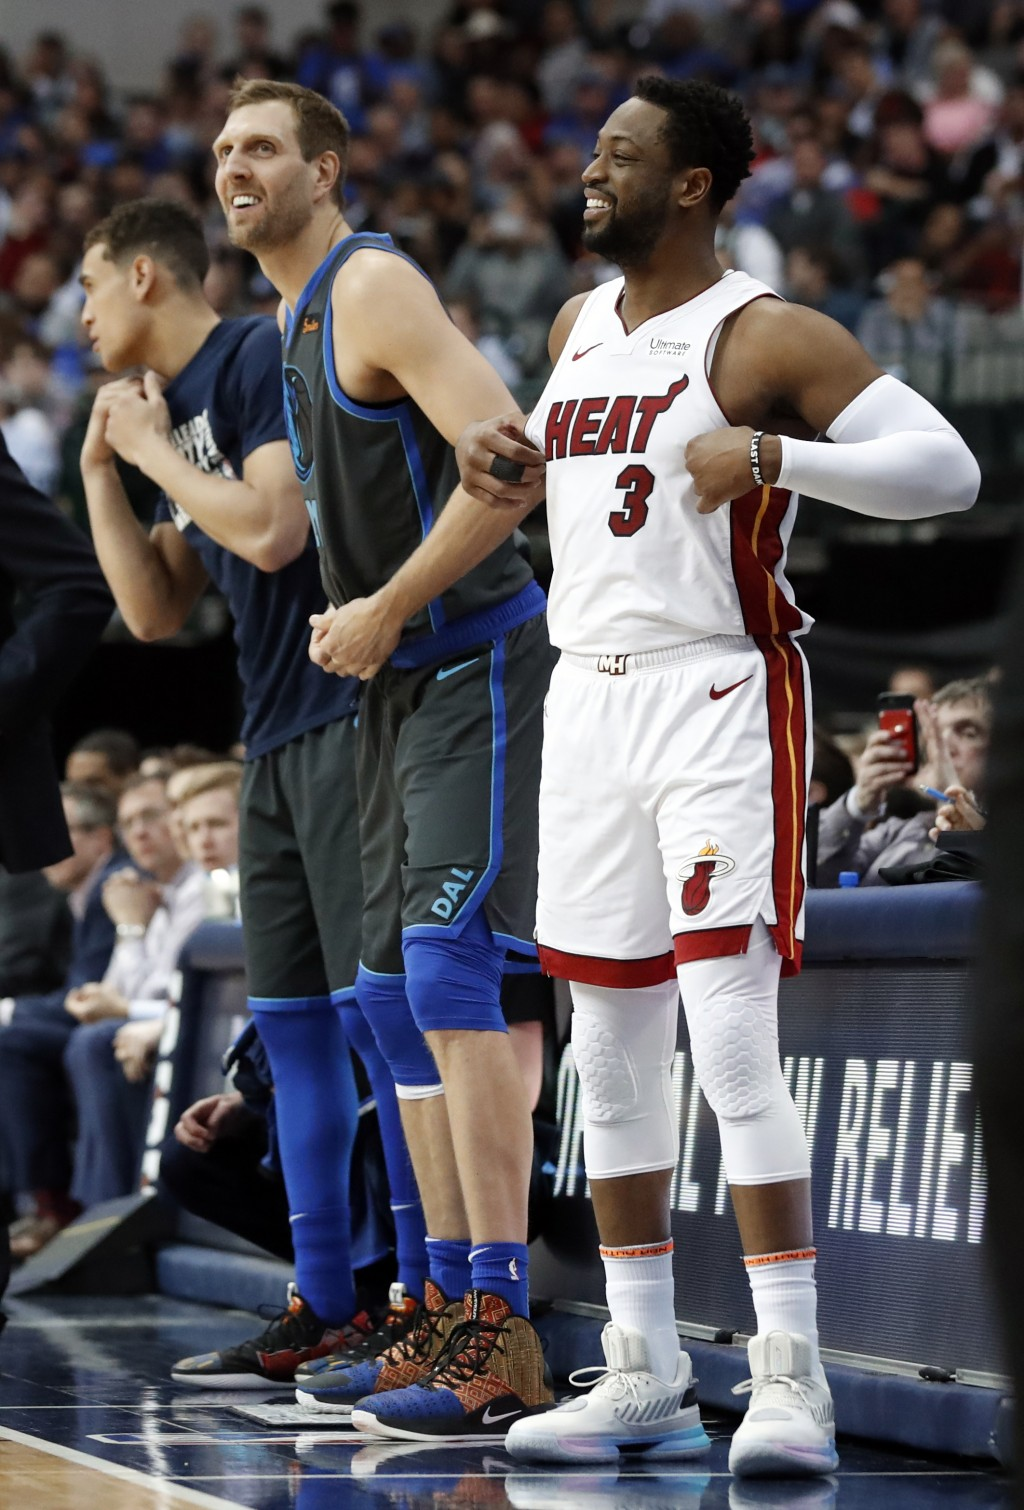 Dallas Mavericks forward Dirk Nowitzki, left, and Miami Heat guard Dwyane Wade, right, prepare to enter during the first half of an NBA basketball gam...